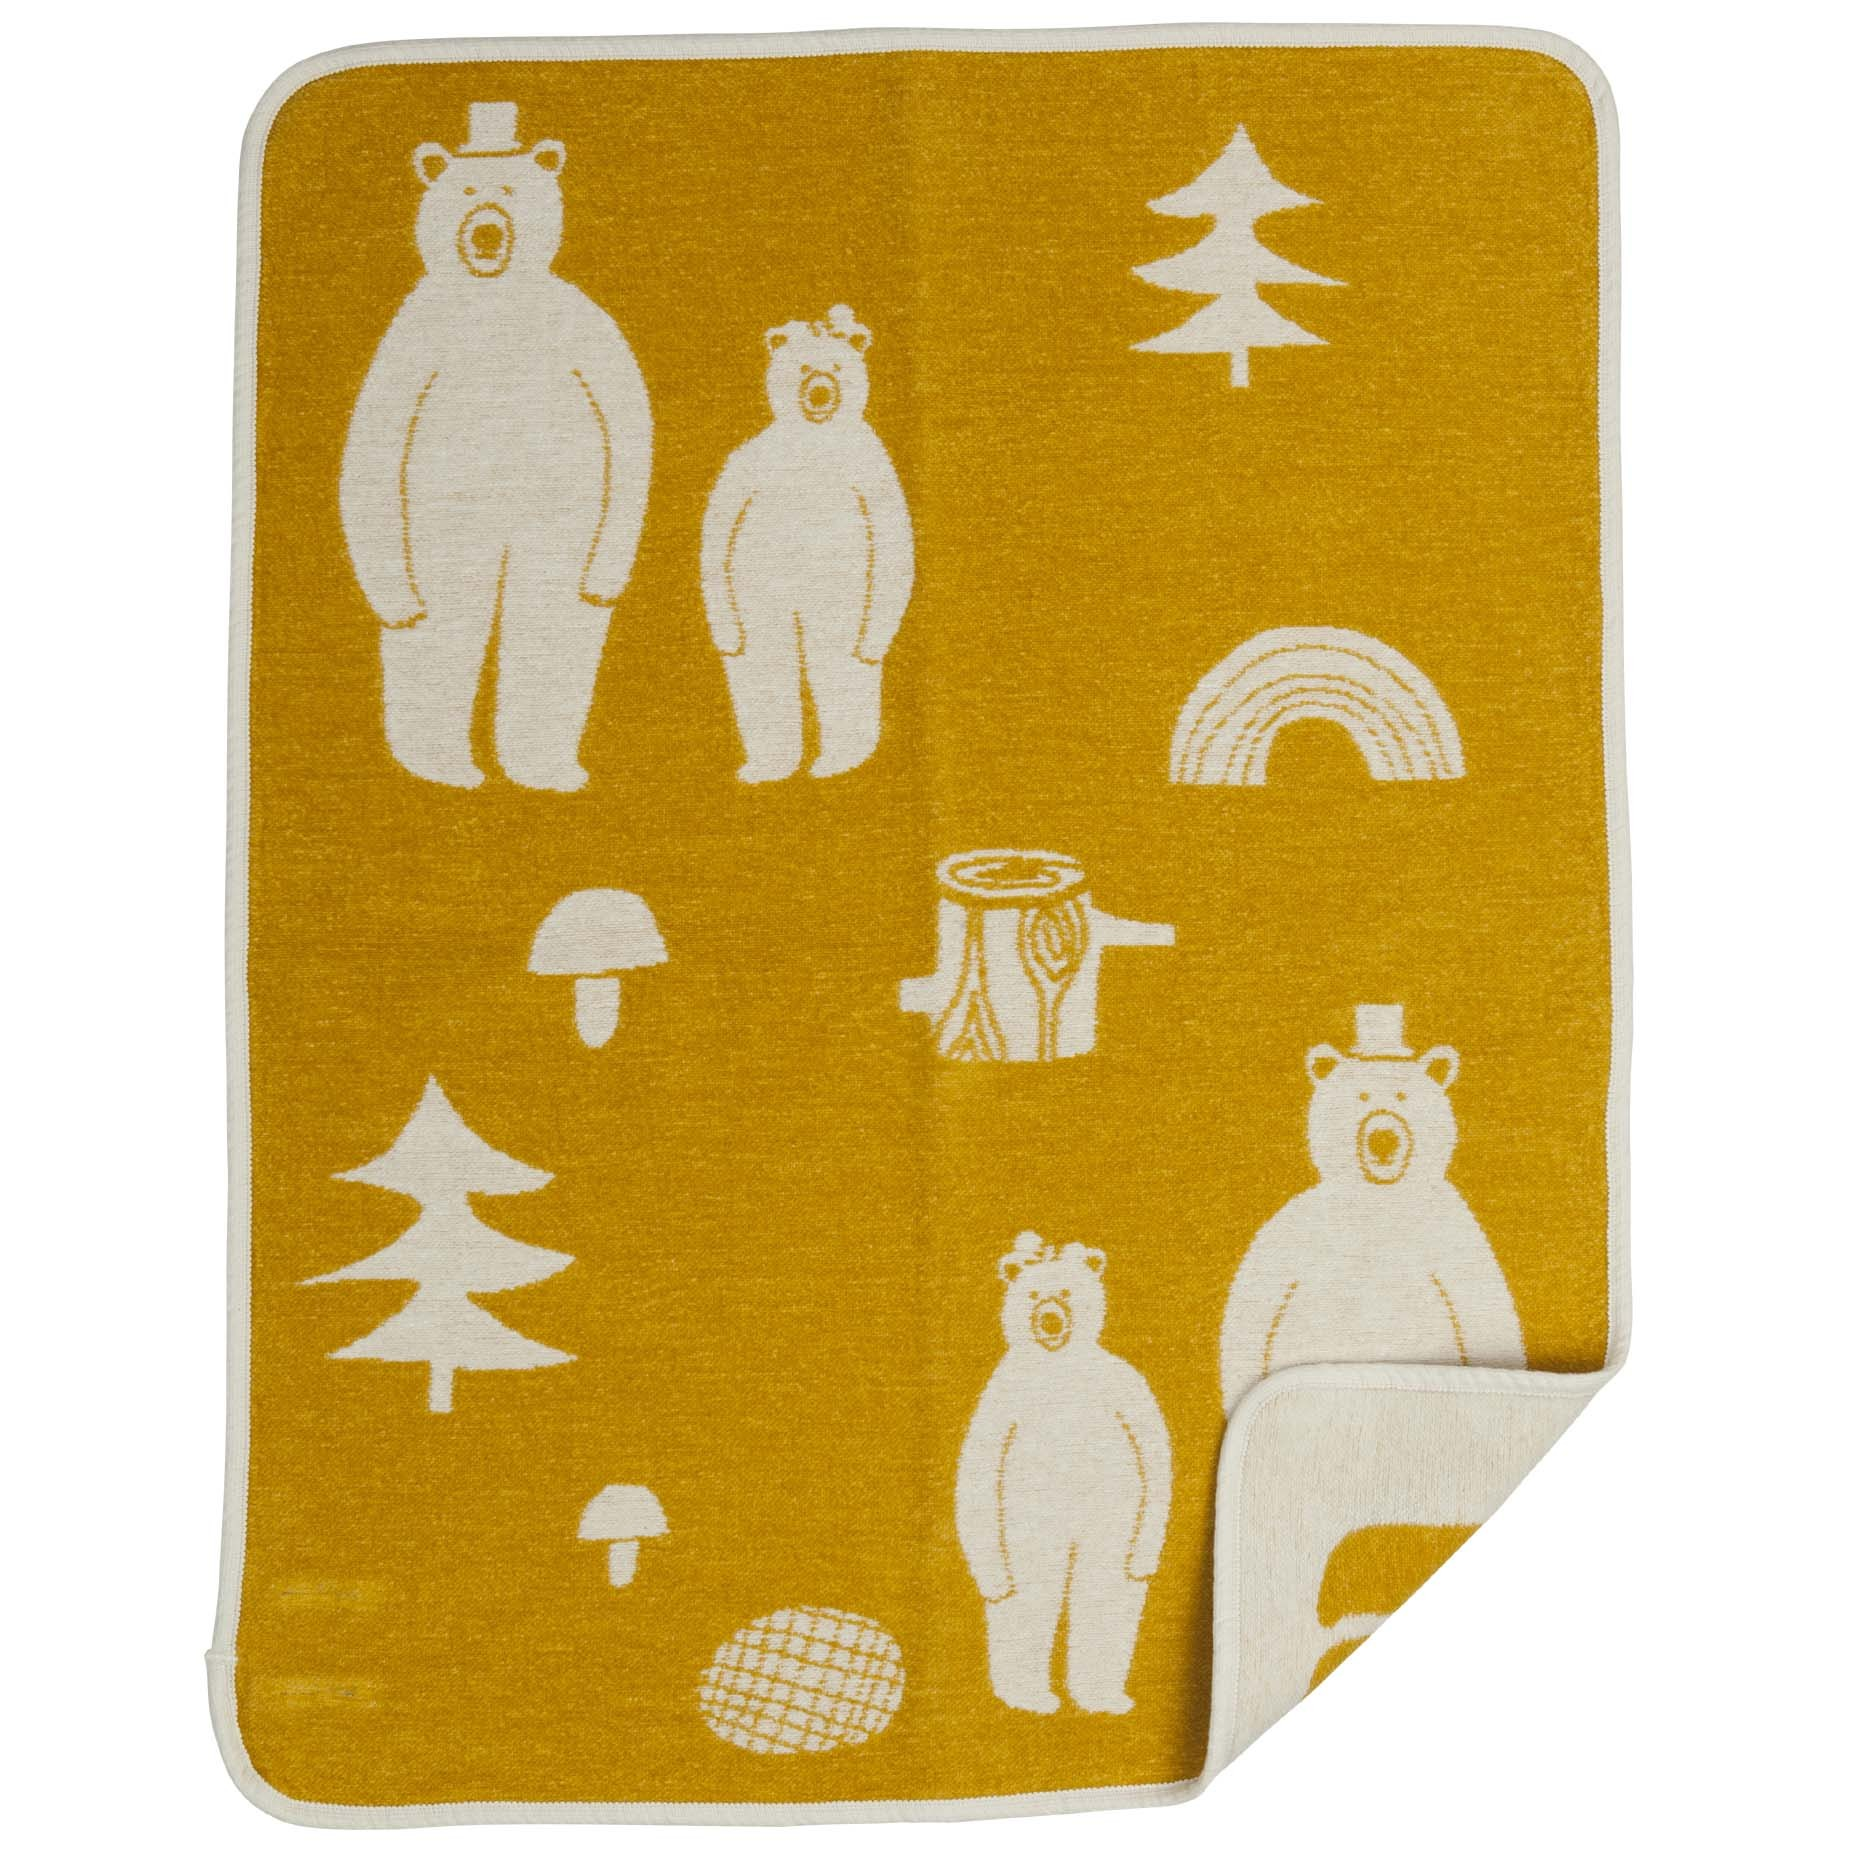 woodland friends baby blanket  greyyellow  the blue door -  practical gifts for new babies yellow woodland cotton blanket